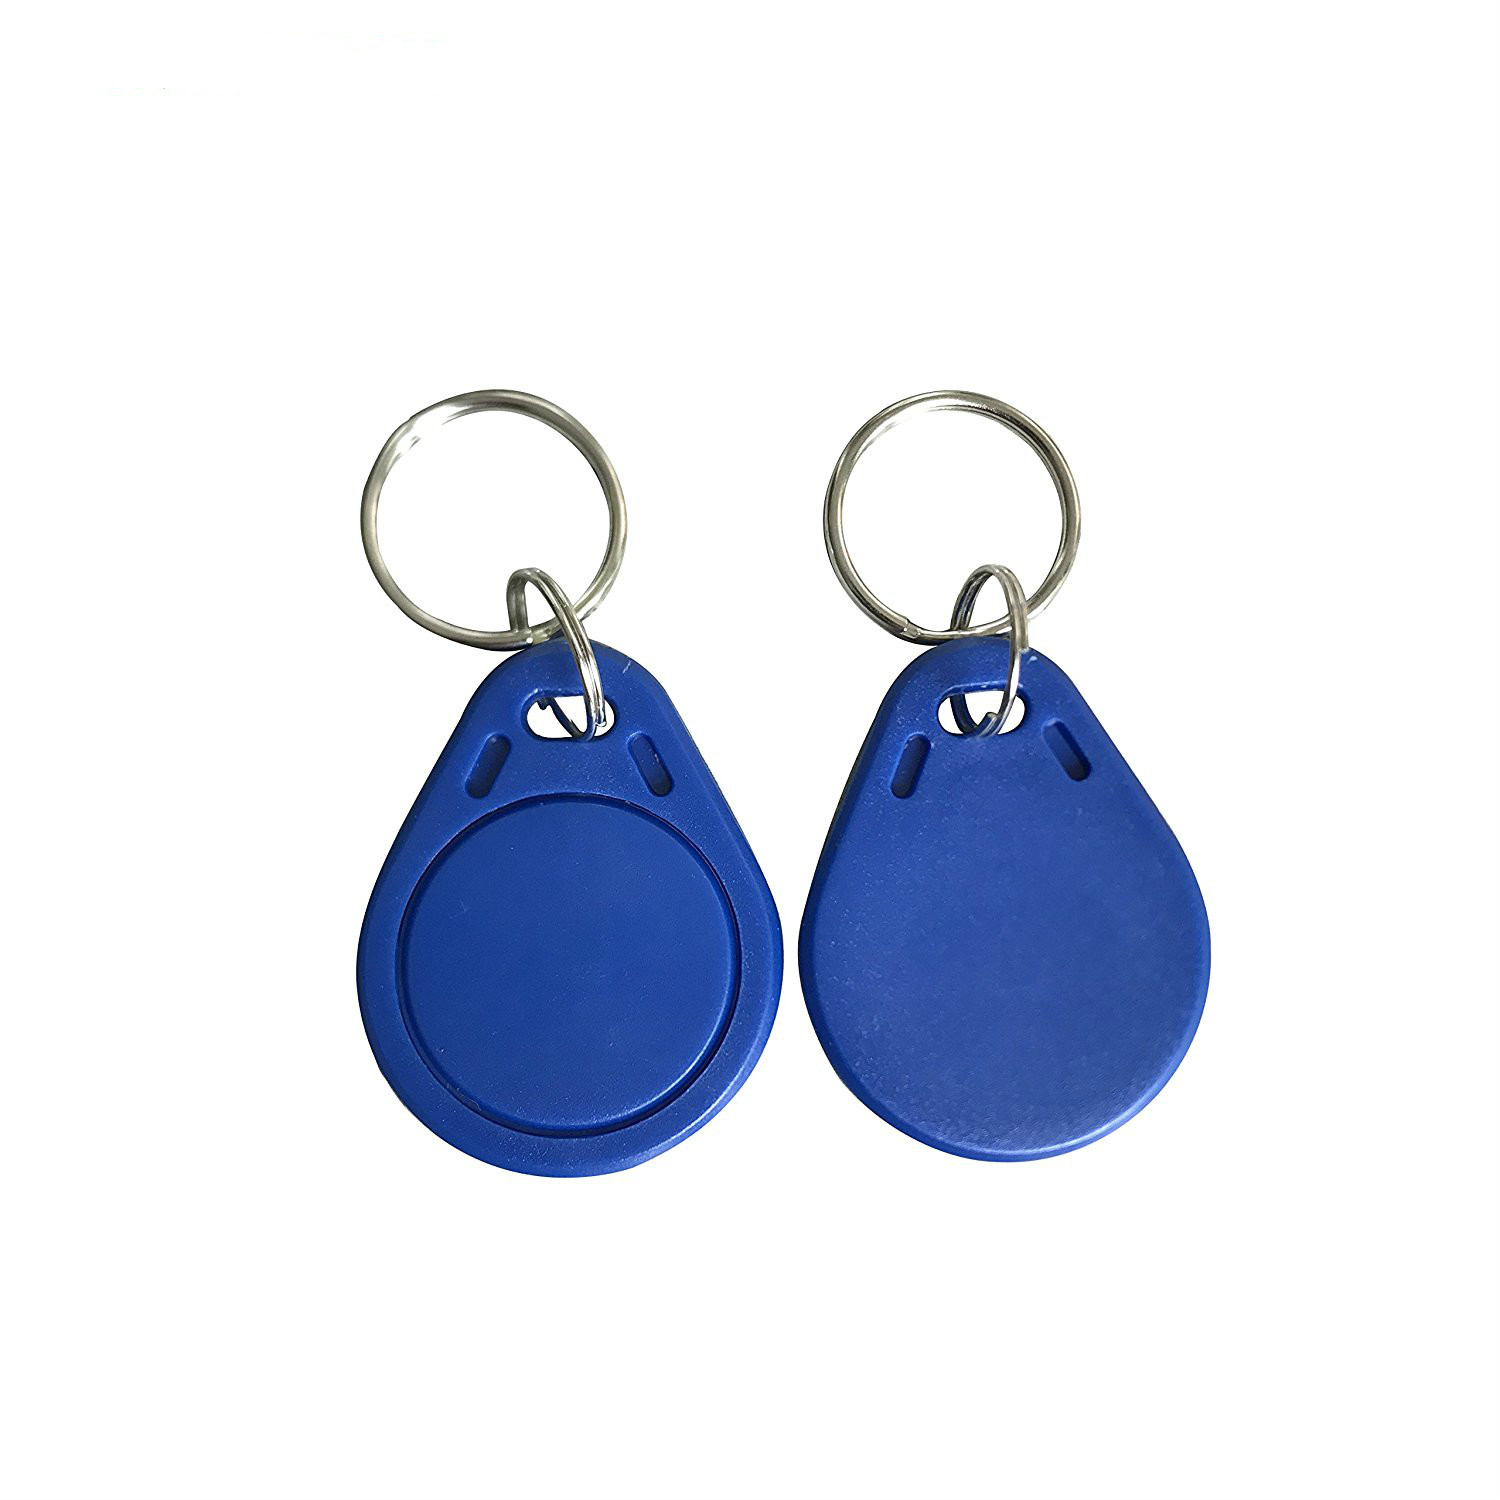 1000pcs ISO14443A RFID MF Classic 1K Keyfobs NFC Tag 13.56MHz access control key card token for home/office/apartment blue color 1000pcs long range rfid plastic seal tag alien h3 used for waste bin management and gas jar management